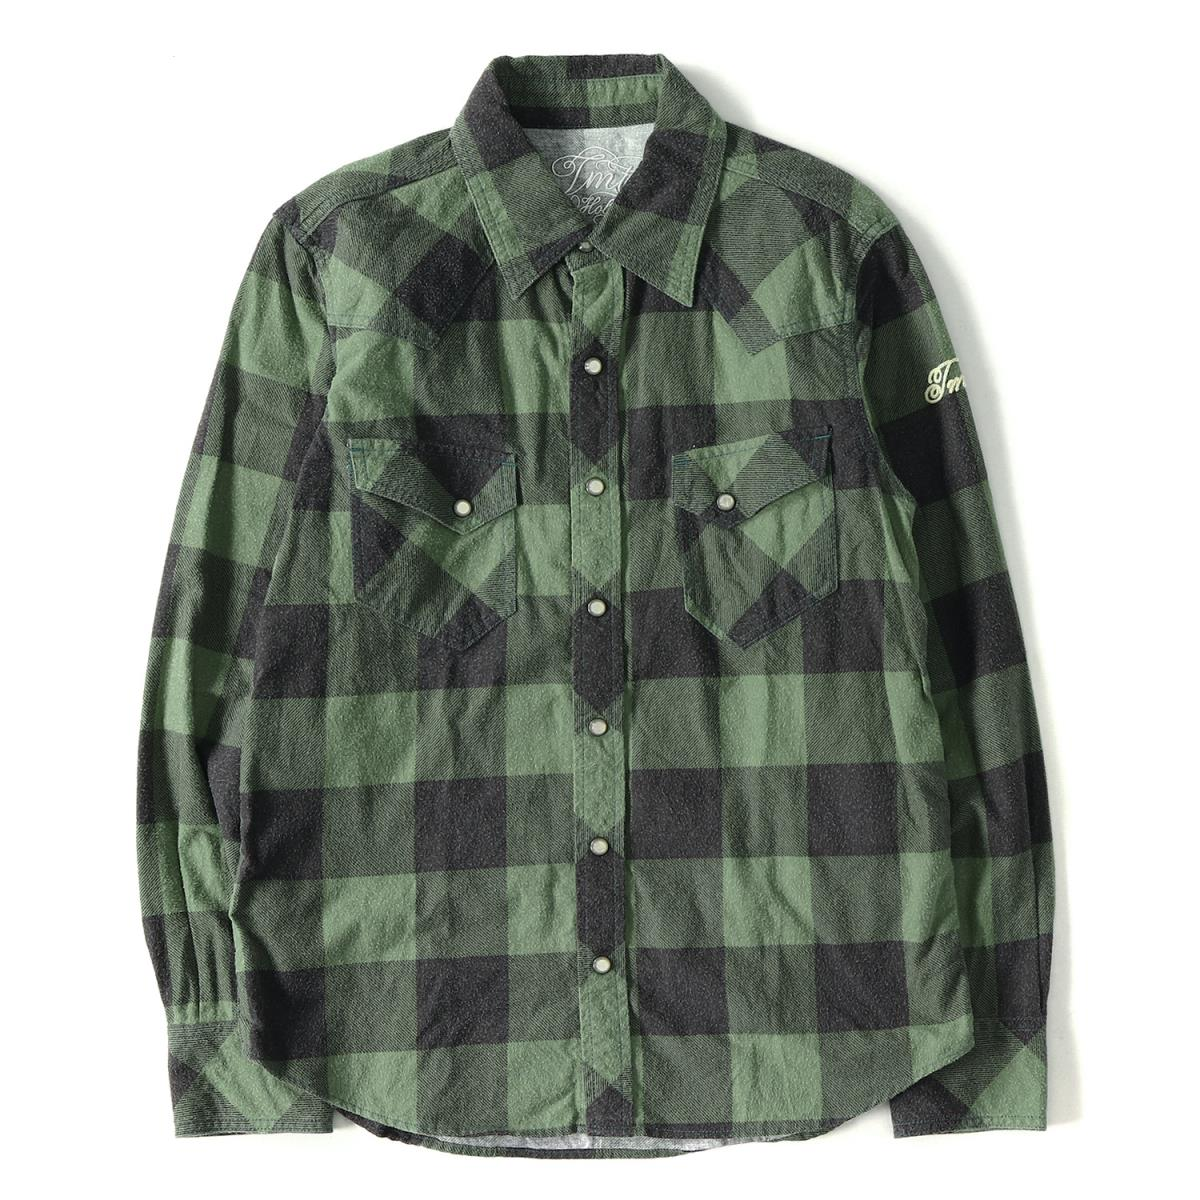 TMT (tea M tea) 16A W buffalo check western flannel shirt (BUFFALO CHECK  PRINT SHIRTS) green S de5f130580a